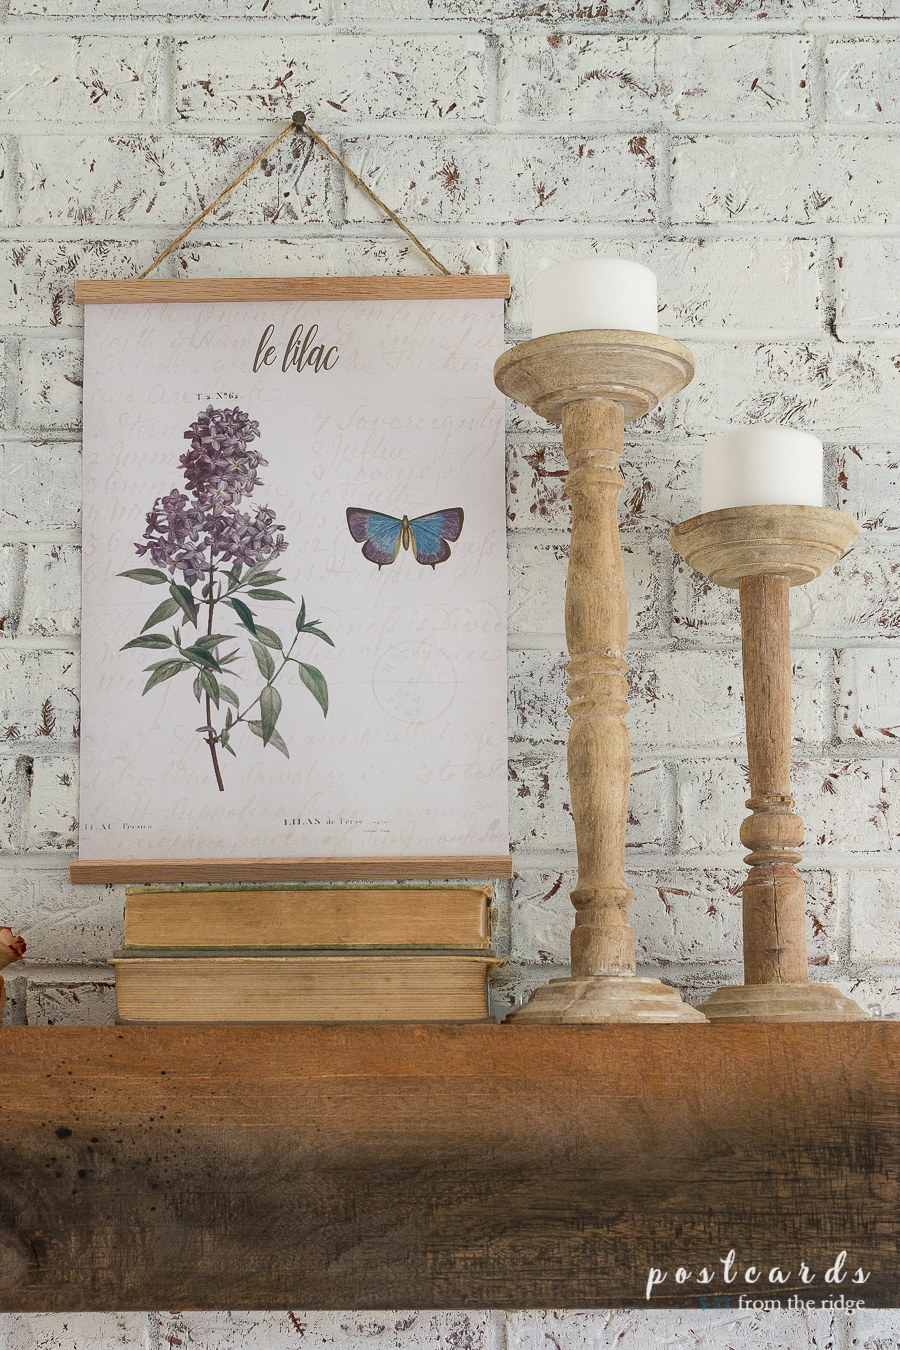 vintage book, found wooden candlesticks, and lilac botanical prints